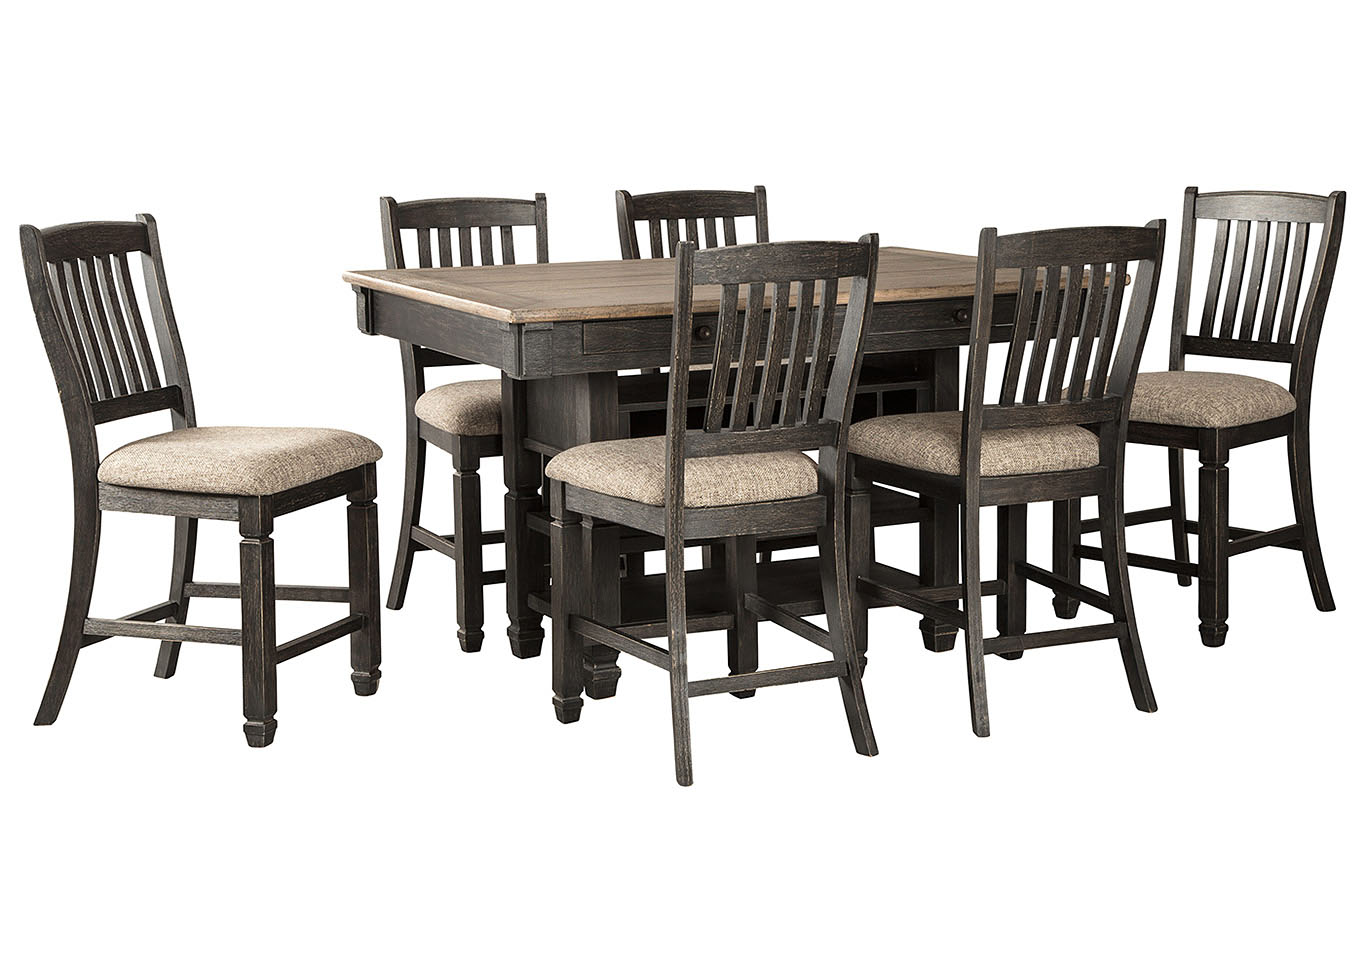 Tyler Creek Counter Height Dining Table and 6 Counter Stools